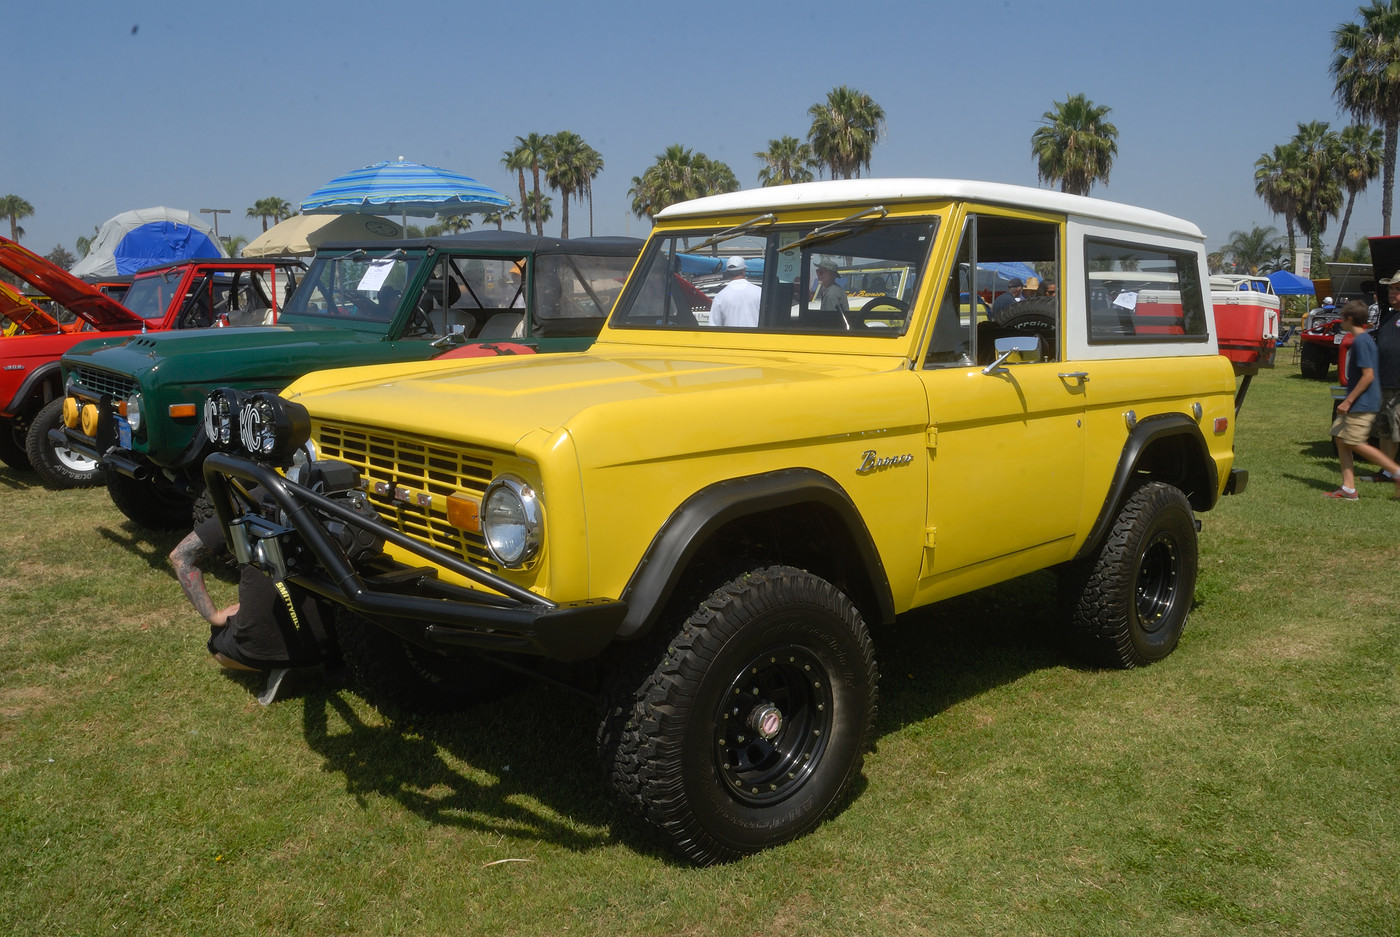 19XX Ford Bronco owned by Samantha and Cory Watt DSC 4918